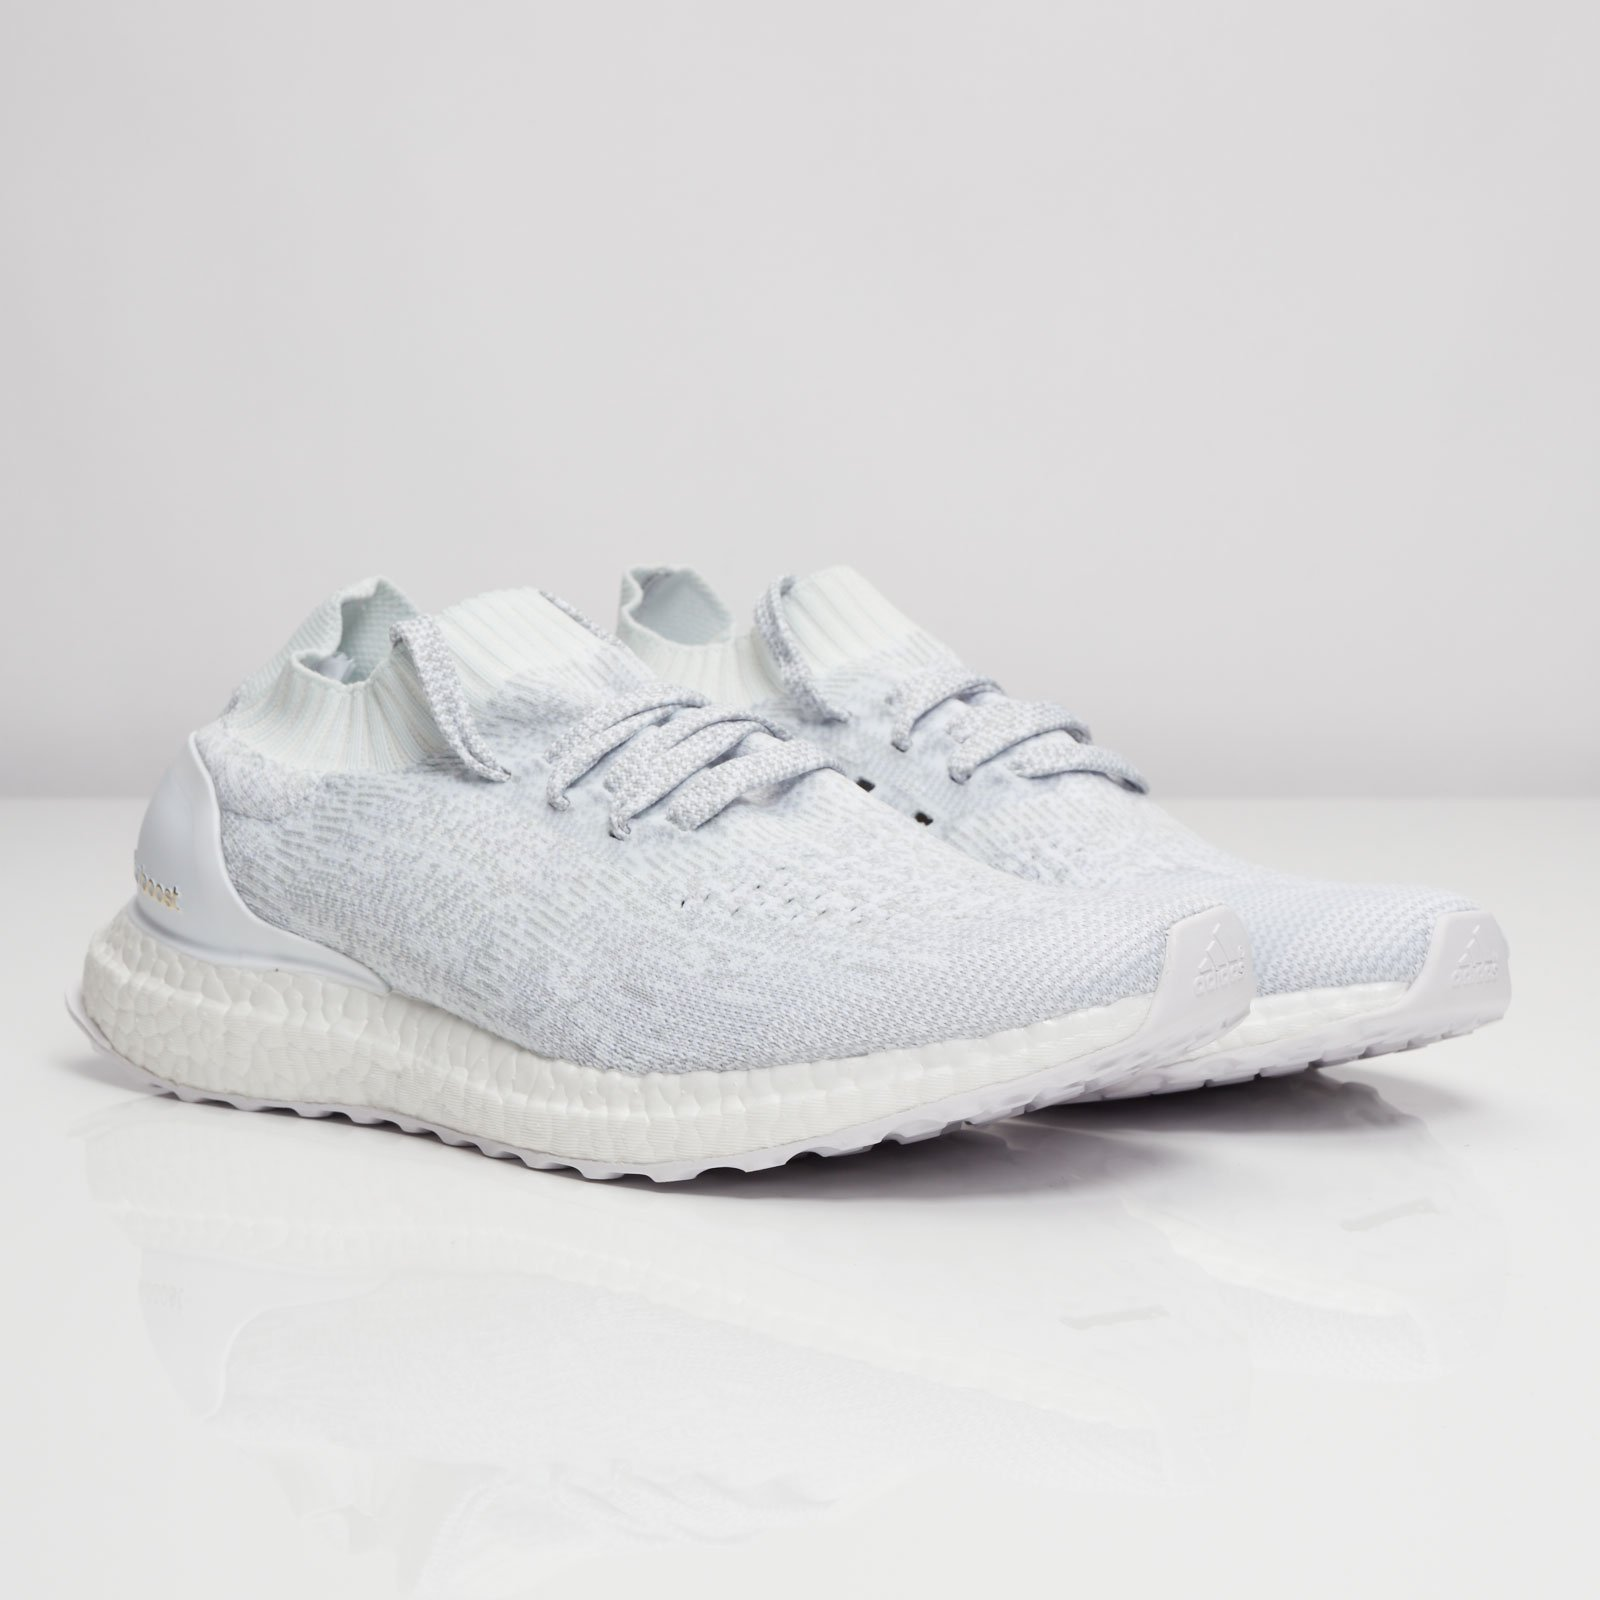 acd05a8fd3fb3 adidas Ultra Boost Uncaged - Bb0773 - Sneakersnstuff